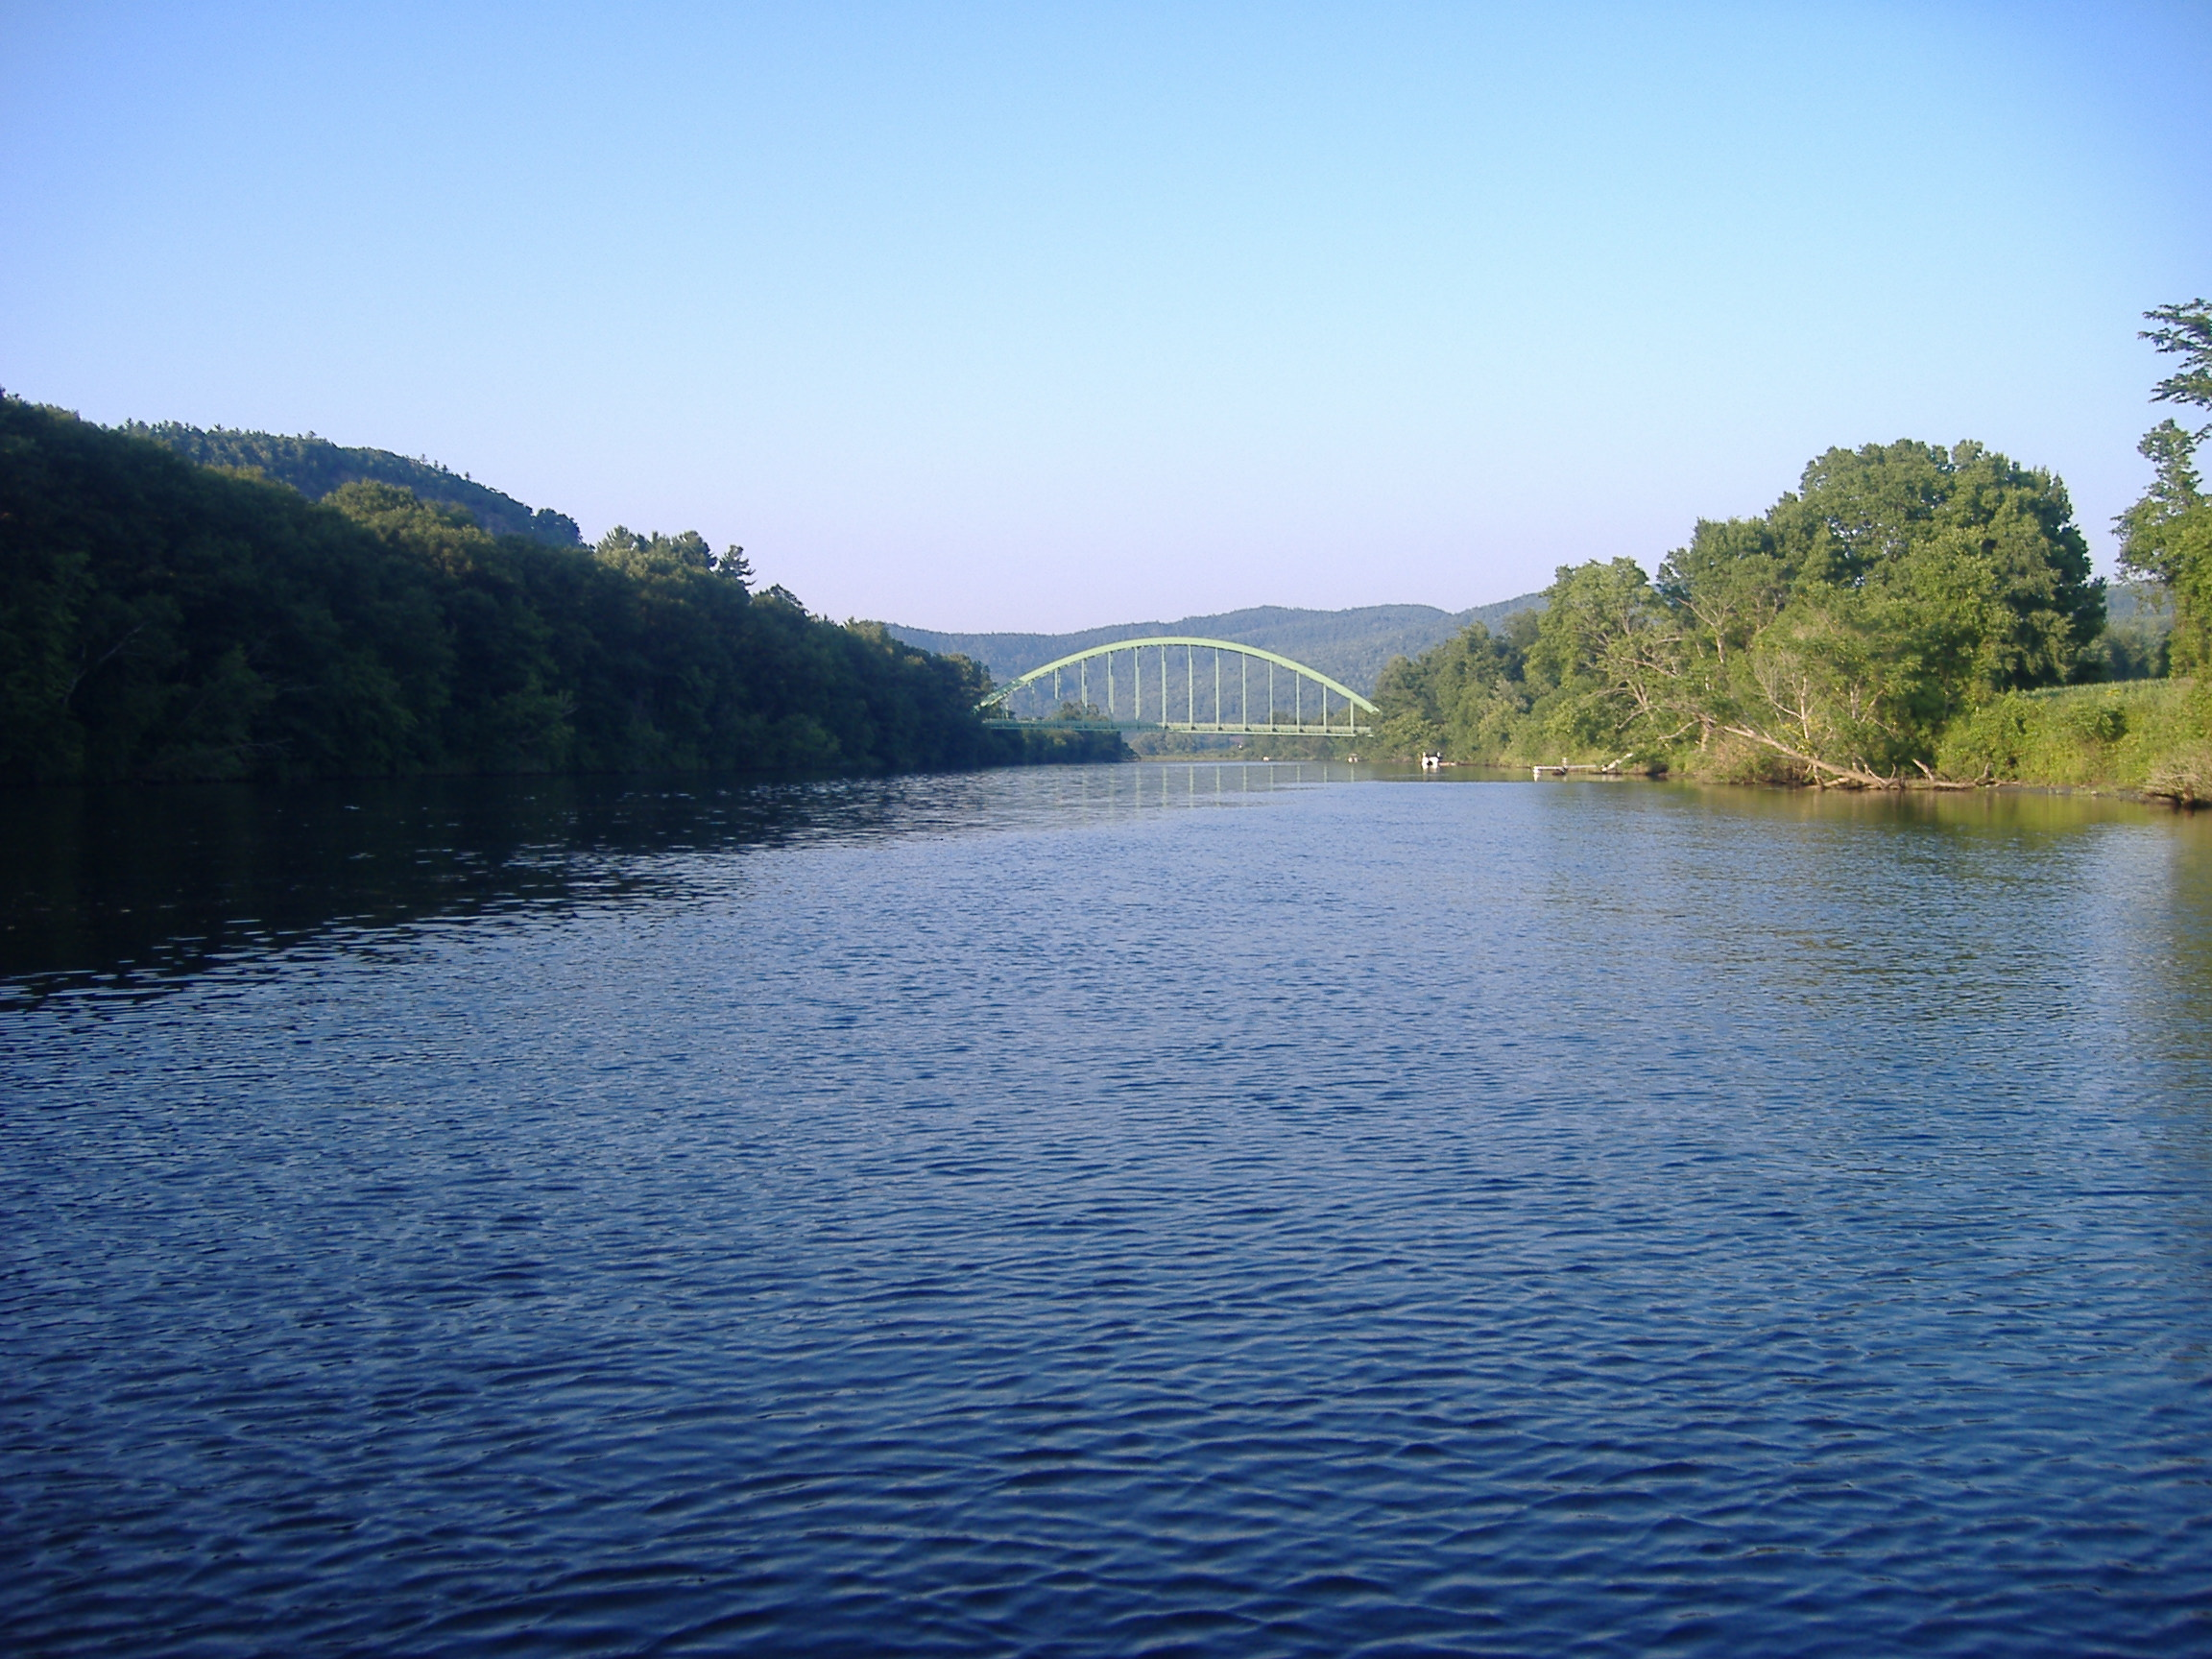 The Connecticut River is the longest river in New England. Flowing